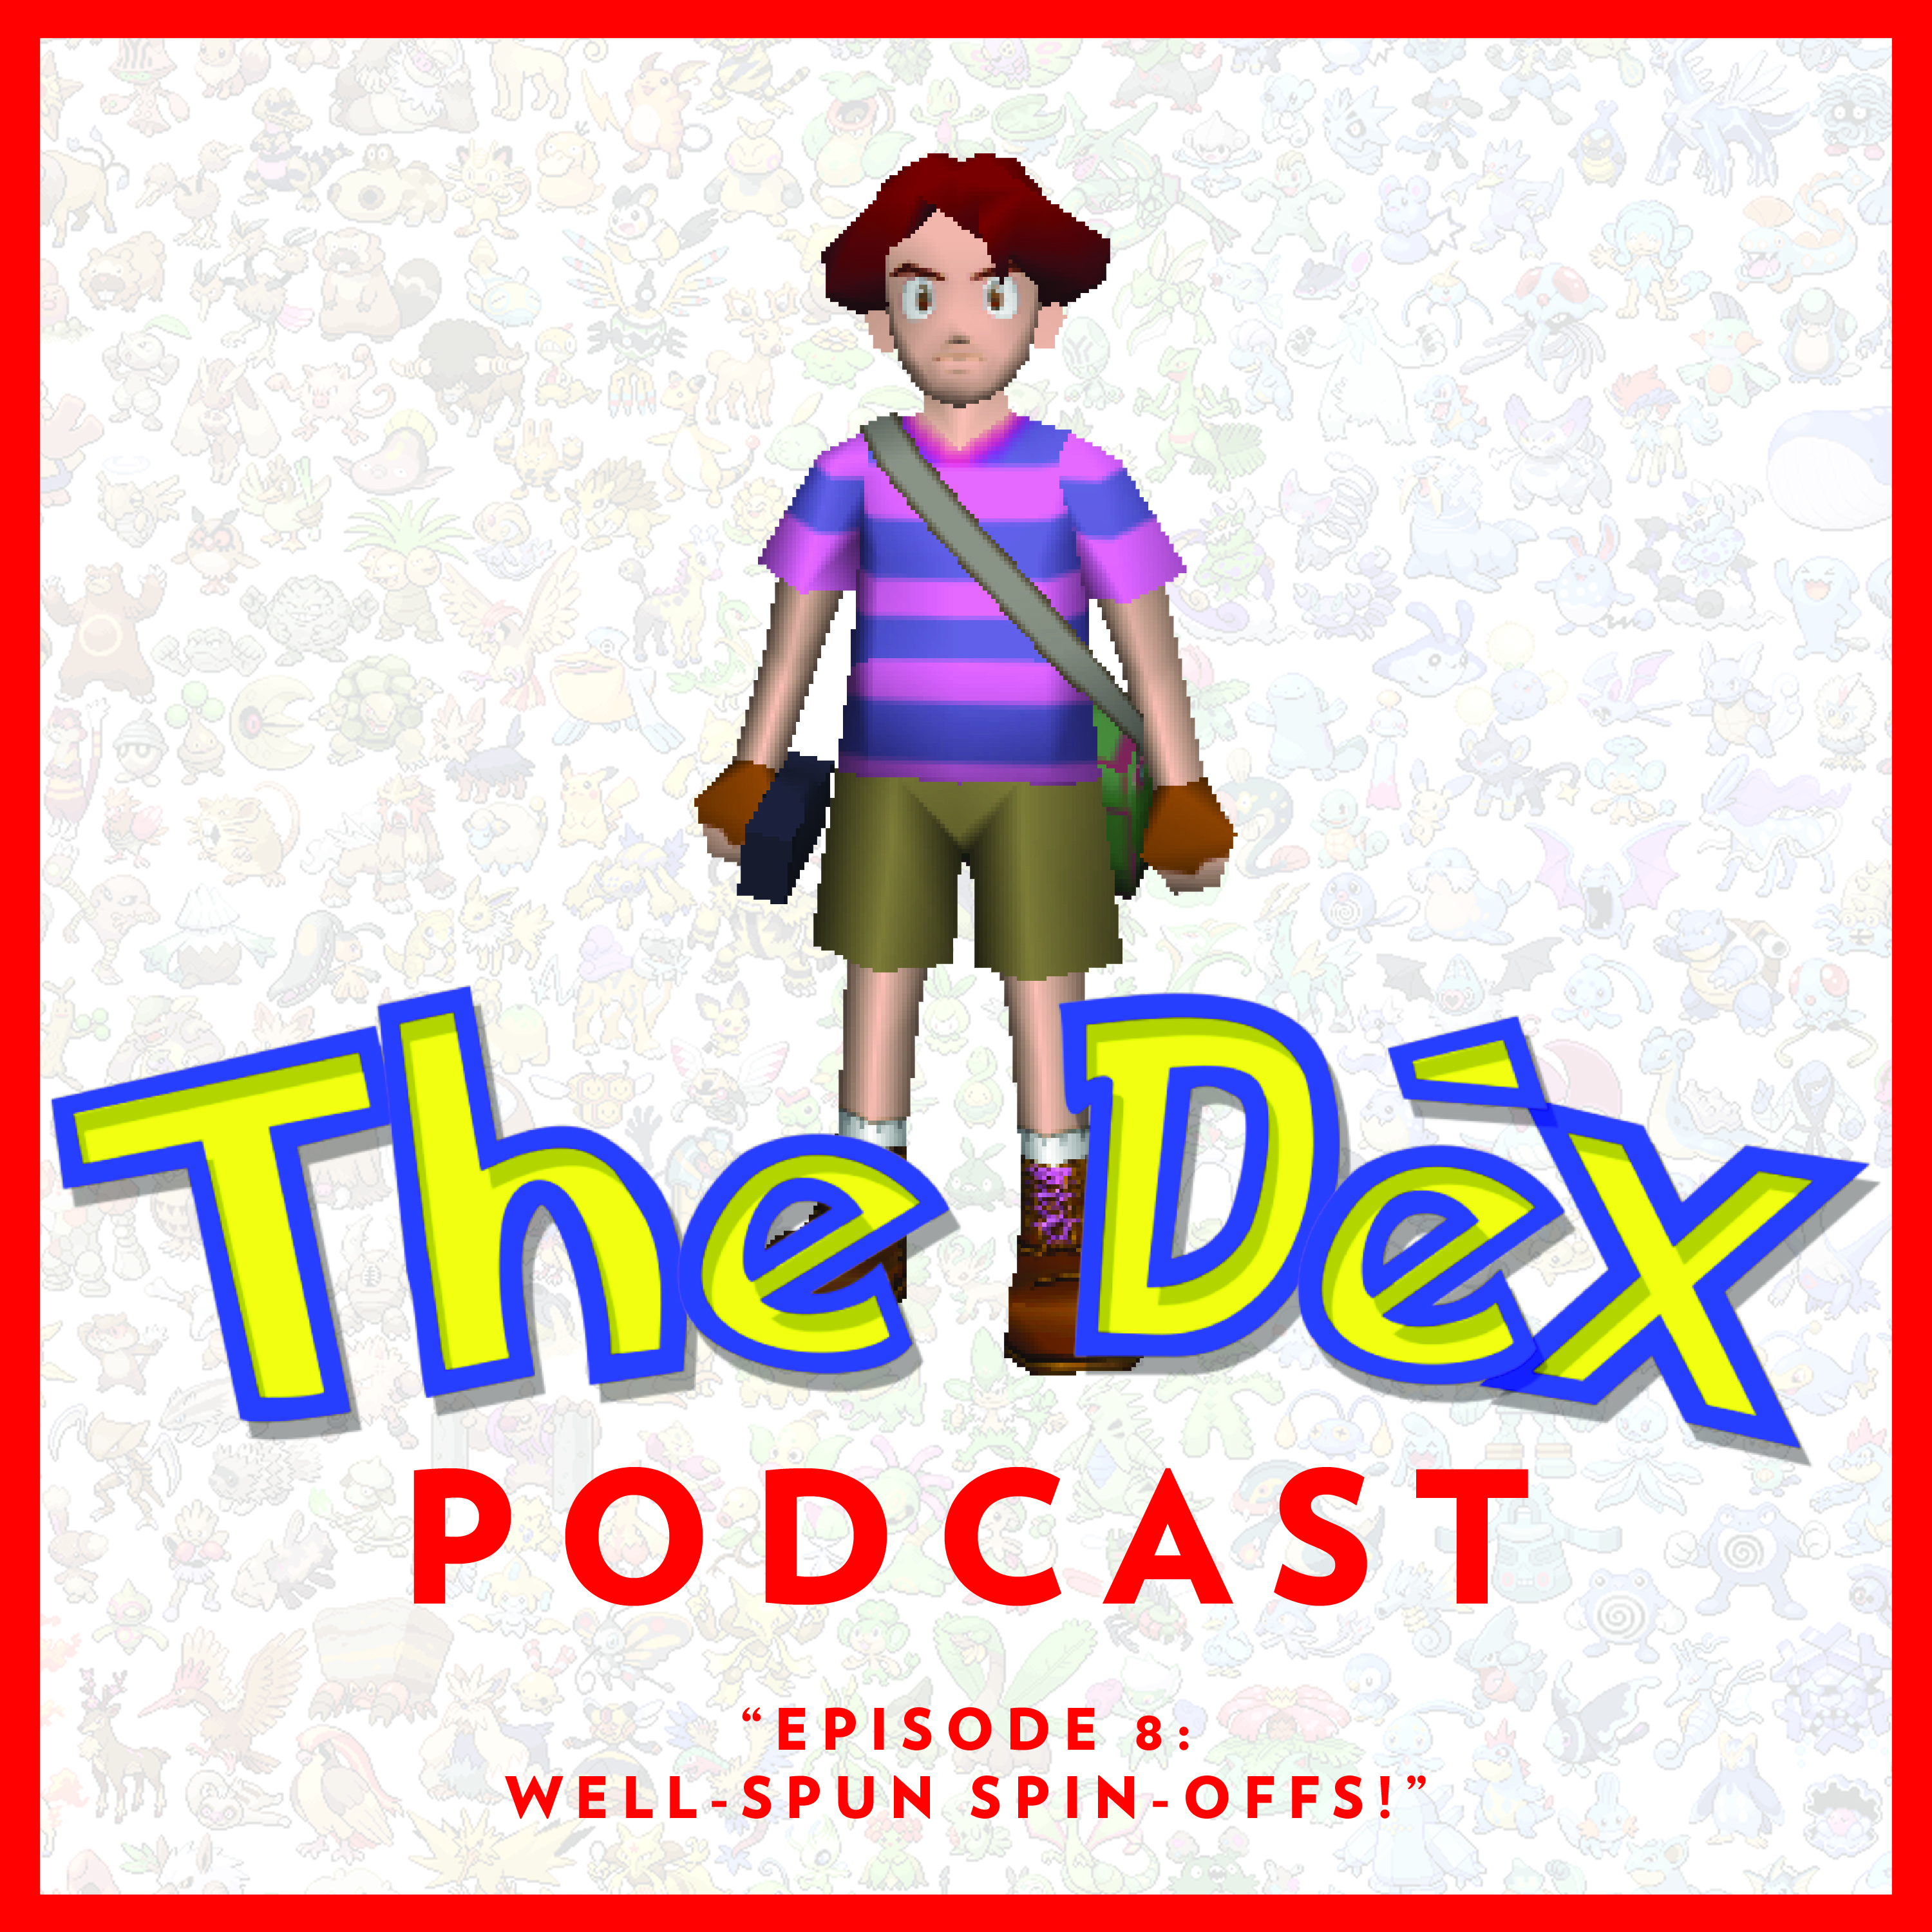 The Dex! Podcast #8: Well-Spun Spin-Offs!